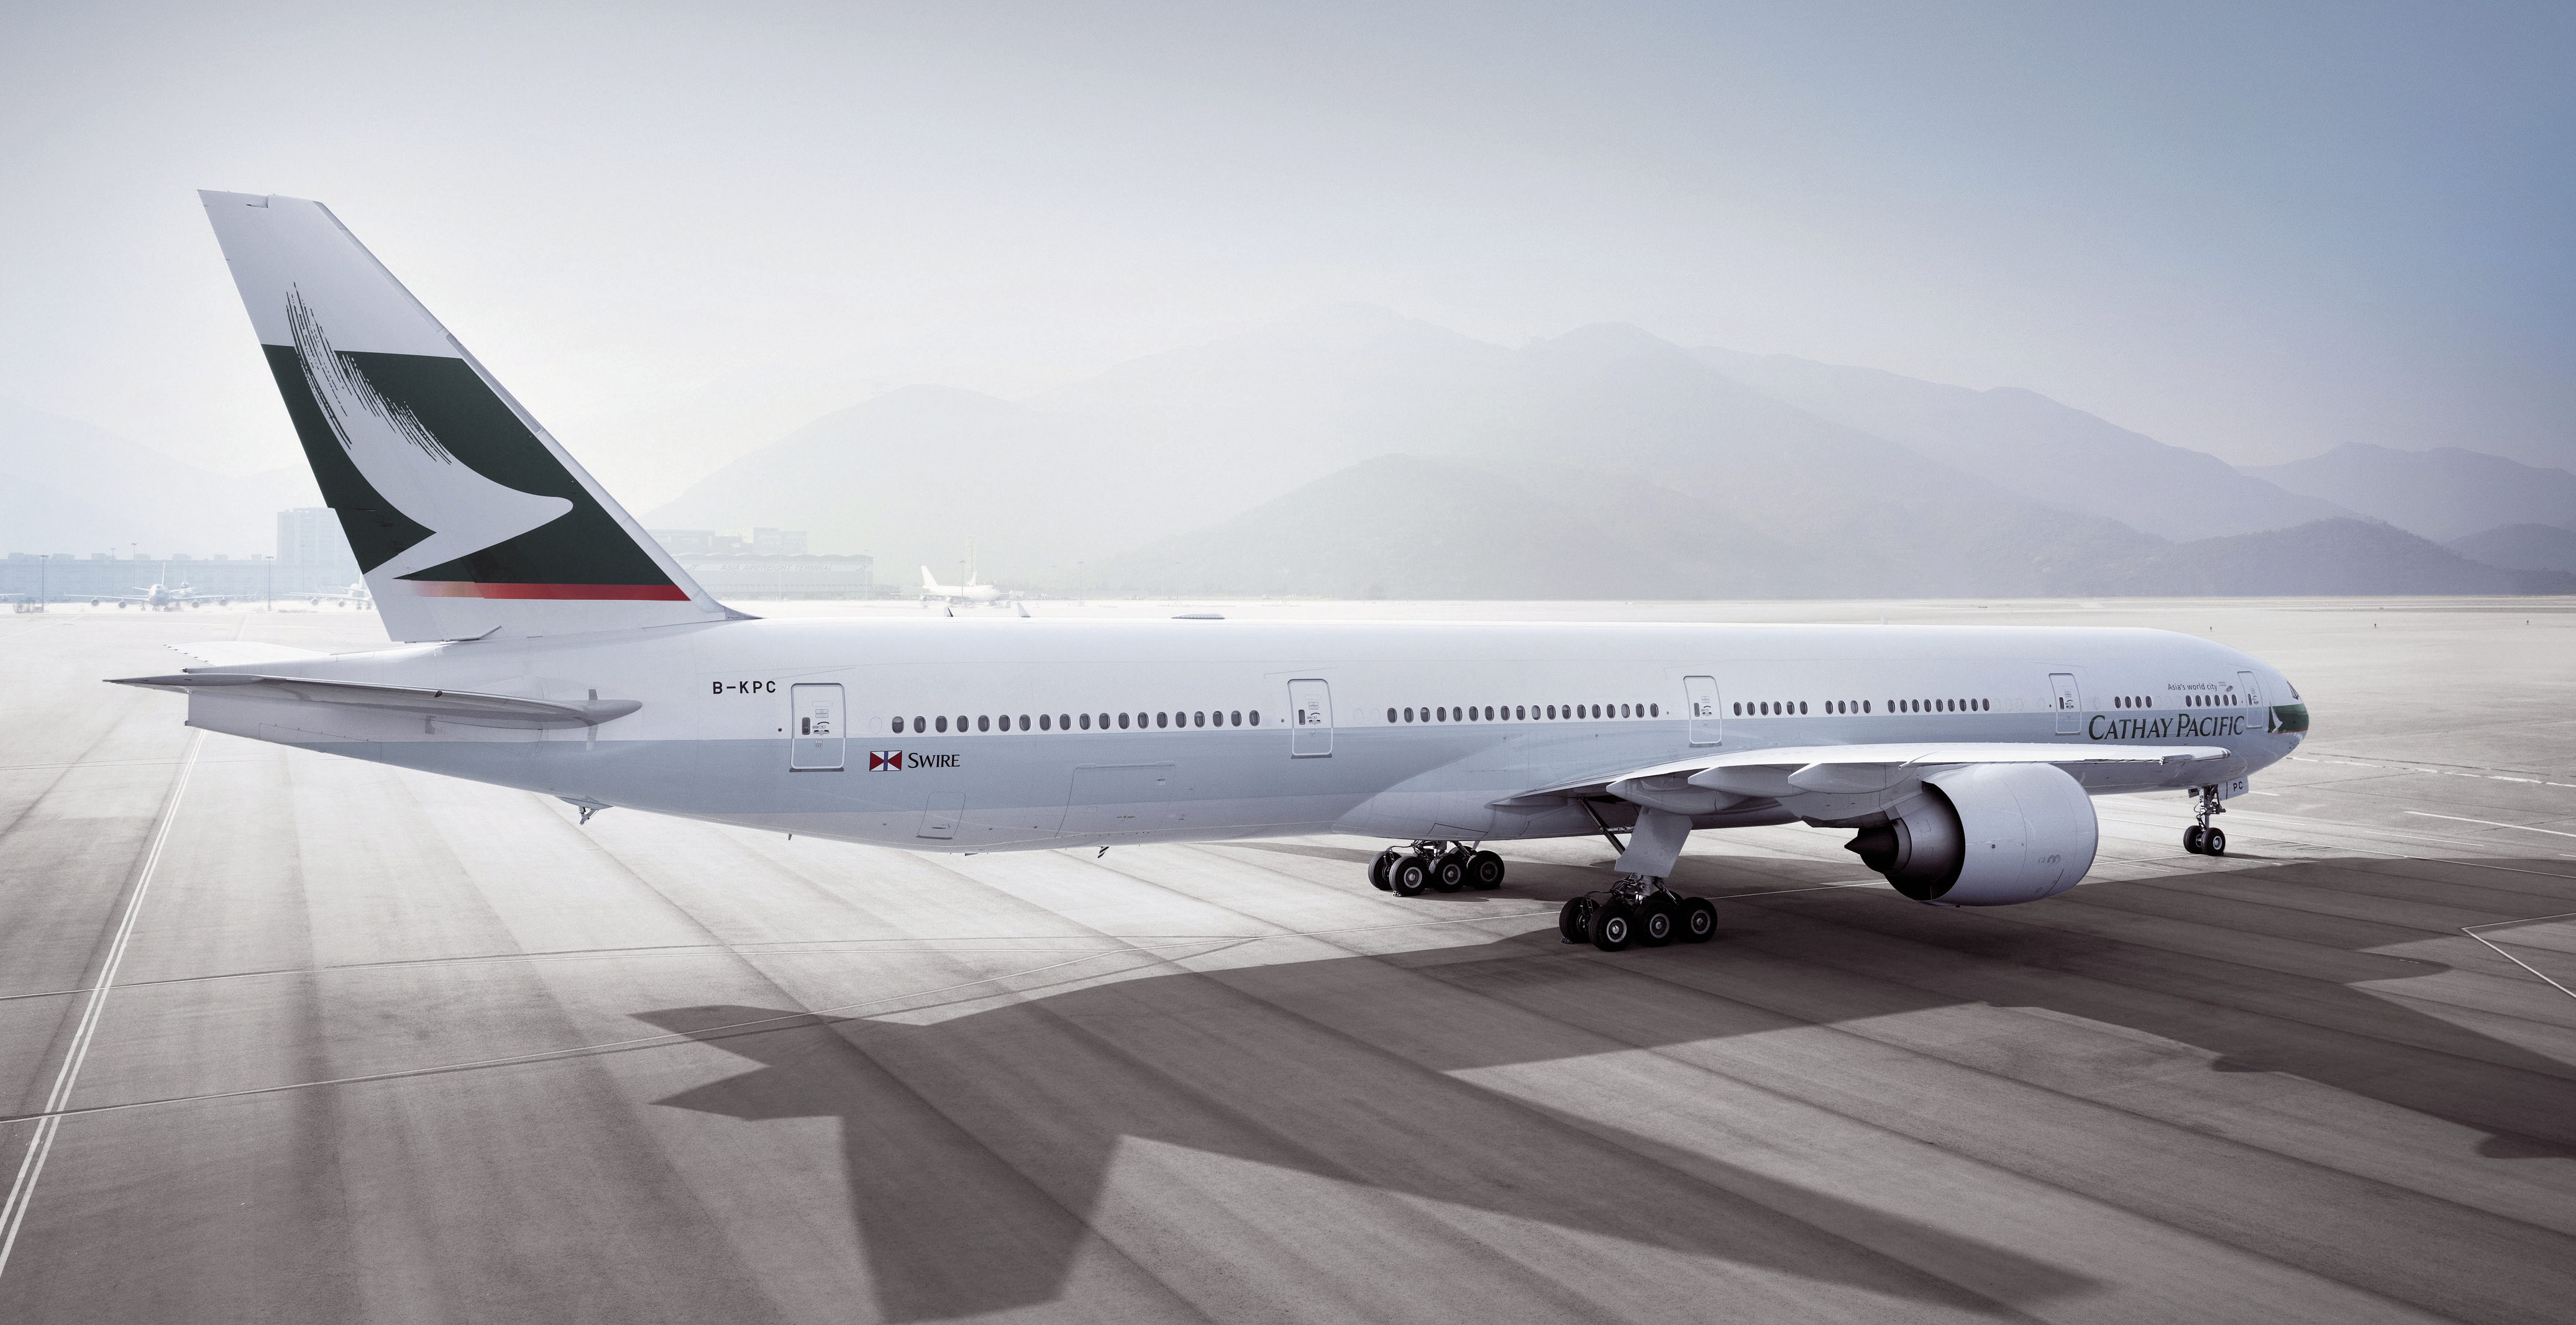 the cathay pacific airways information technology essay Cathay pacific airways stocks have plunged to their lowest level in nearly a decade after the airline revealed a massive data breach has affected the information of 94 million passengers.